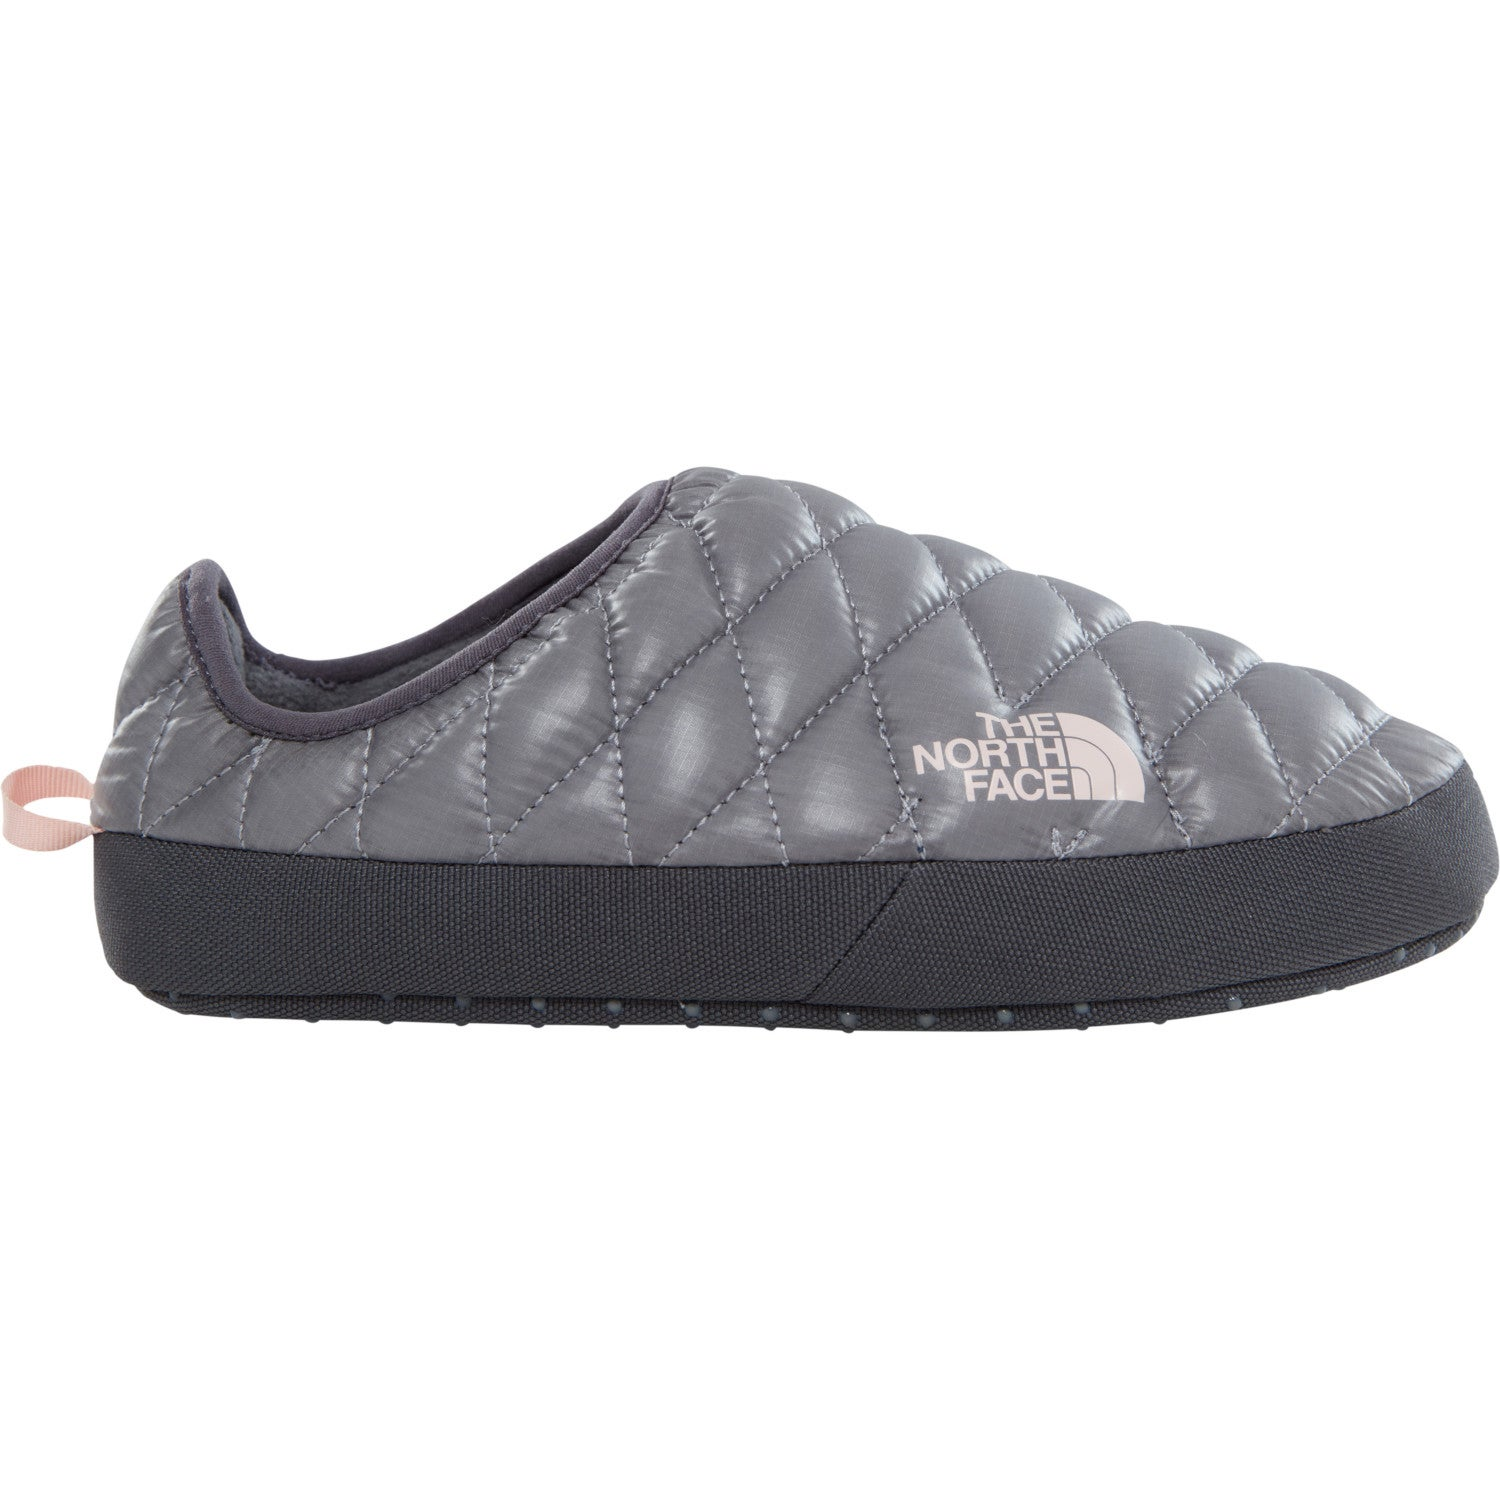 9de5985b0 North Face Thermoball Tent Mule IV Ladies Slippers